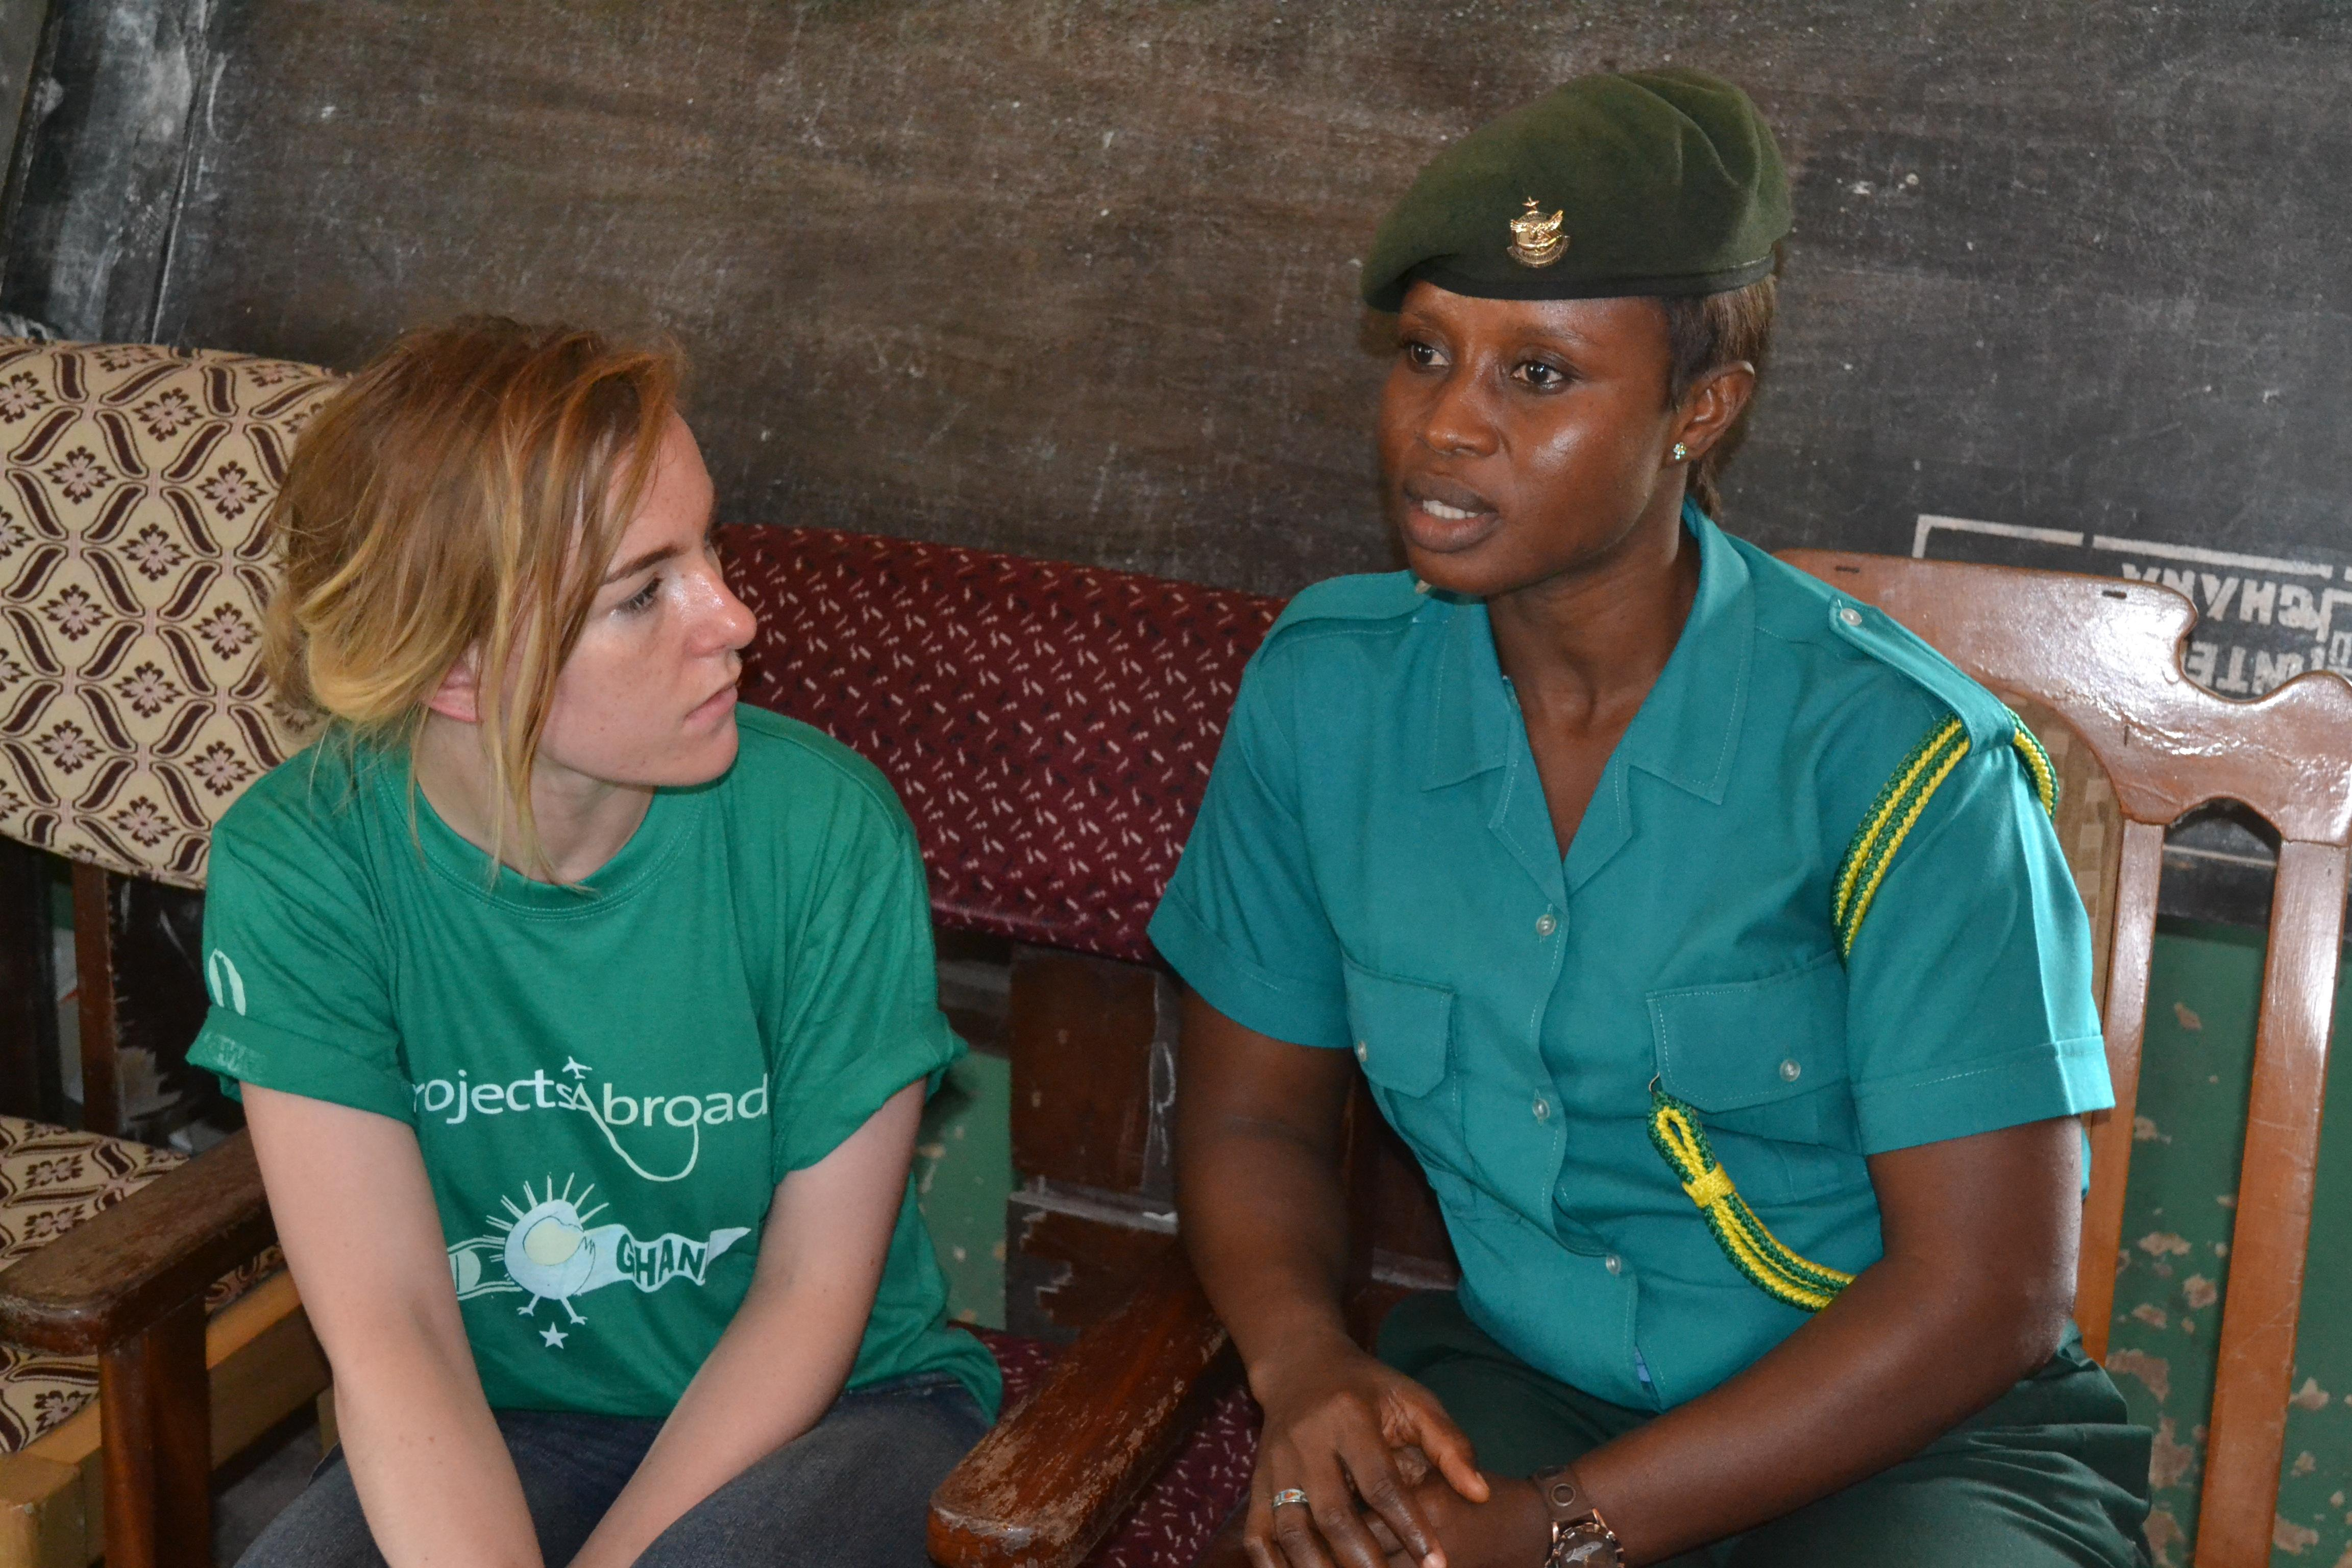 An intern gains human rights work experience interviewing an official on our project for teenagers in Ghana